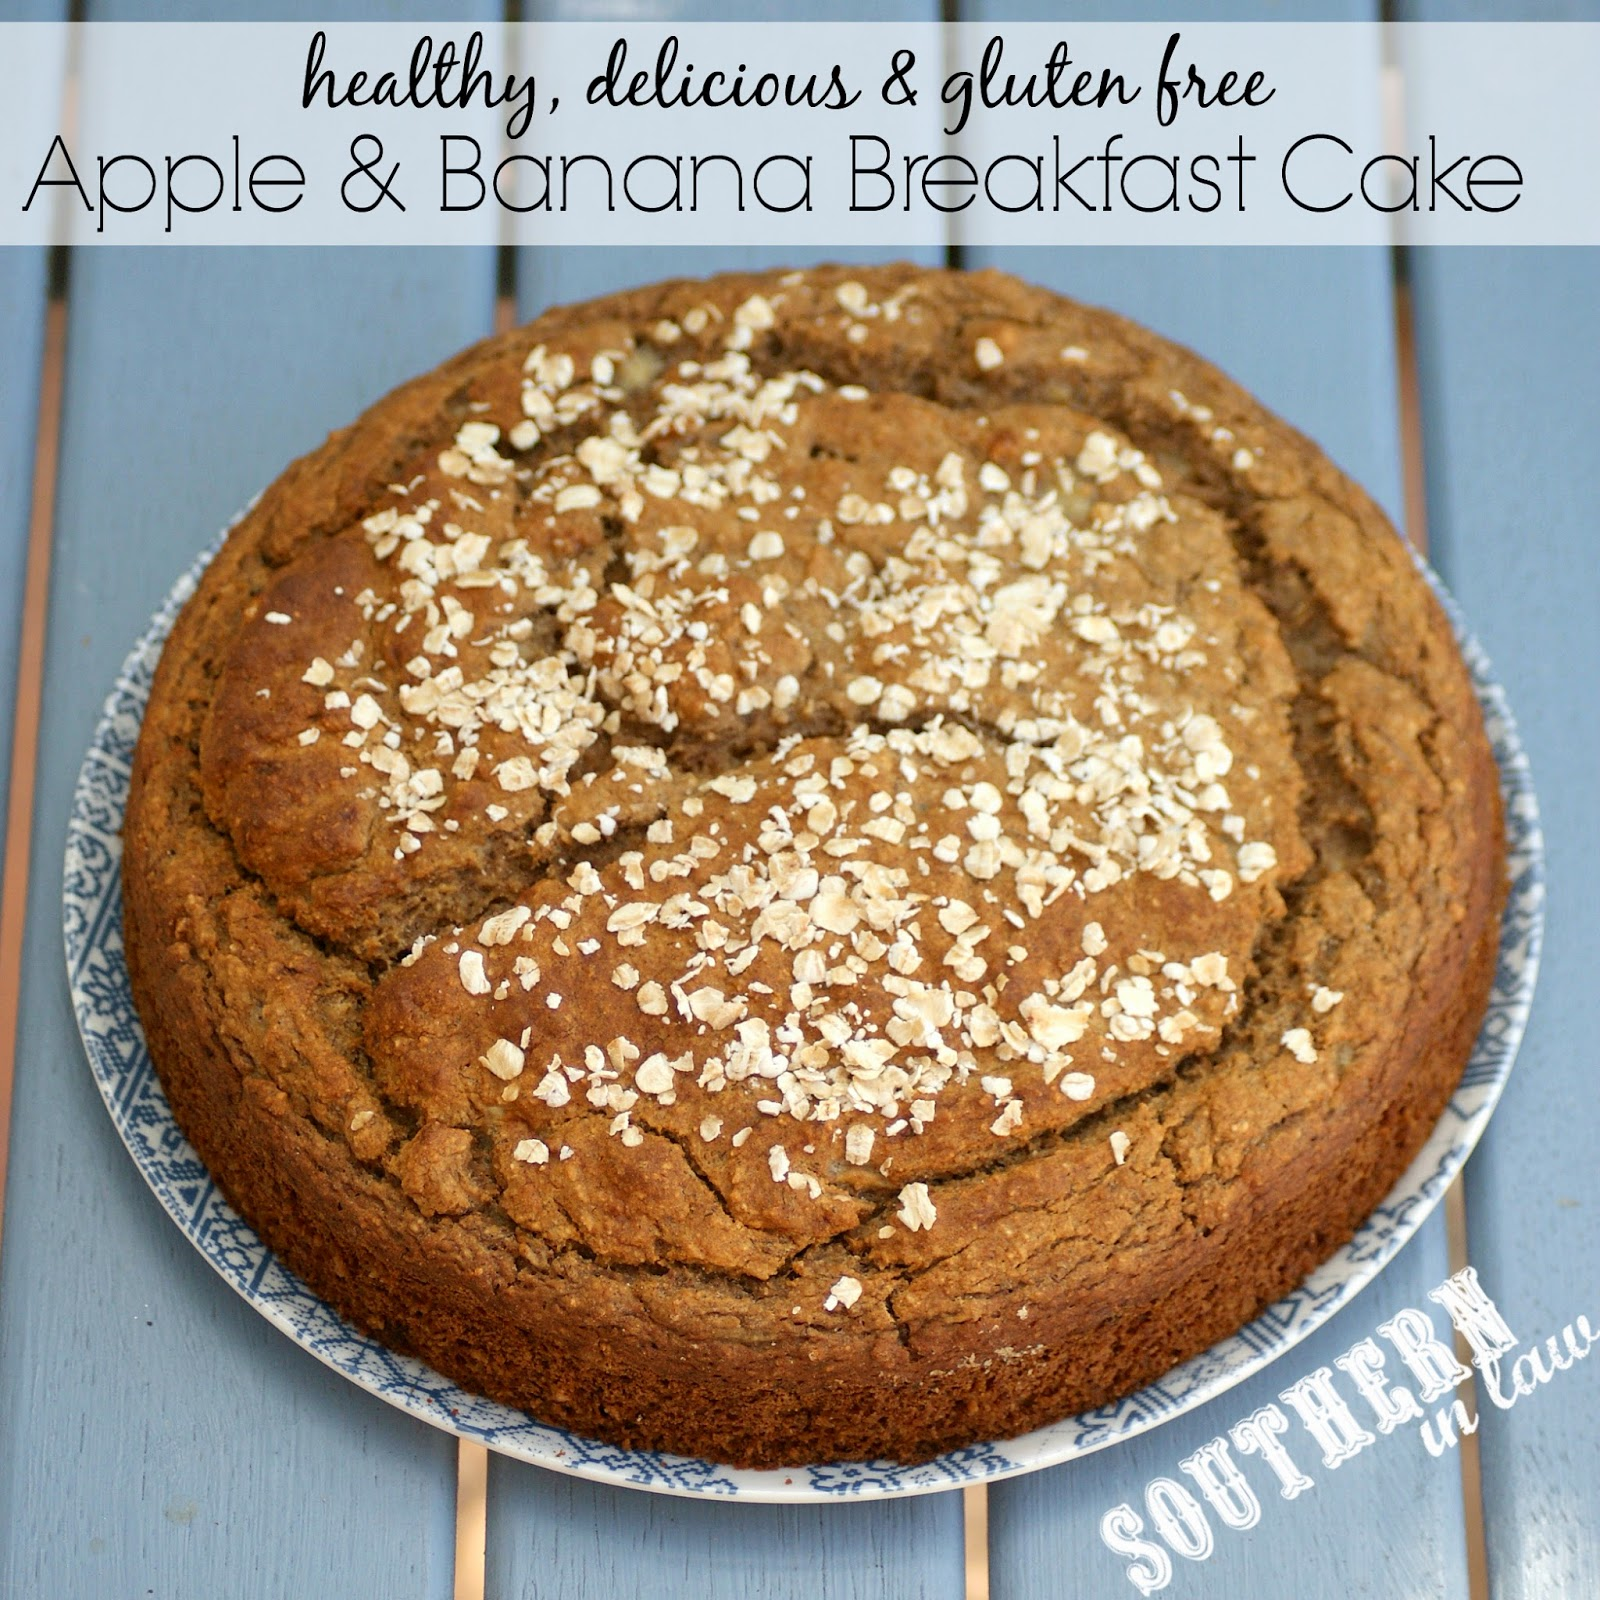 Healthy Apple and Banana Breakfast Cake Recipe - gluten free, low fat, sugar free, clean eating friendly, dairy free